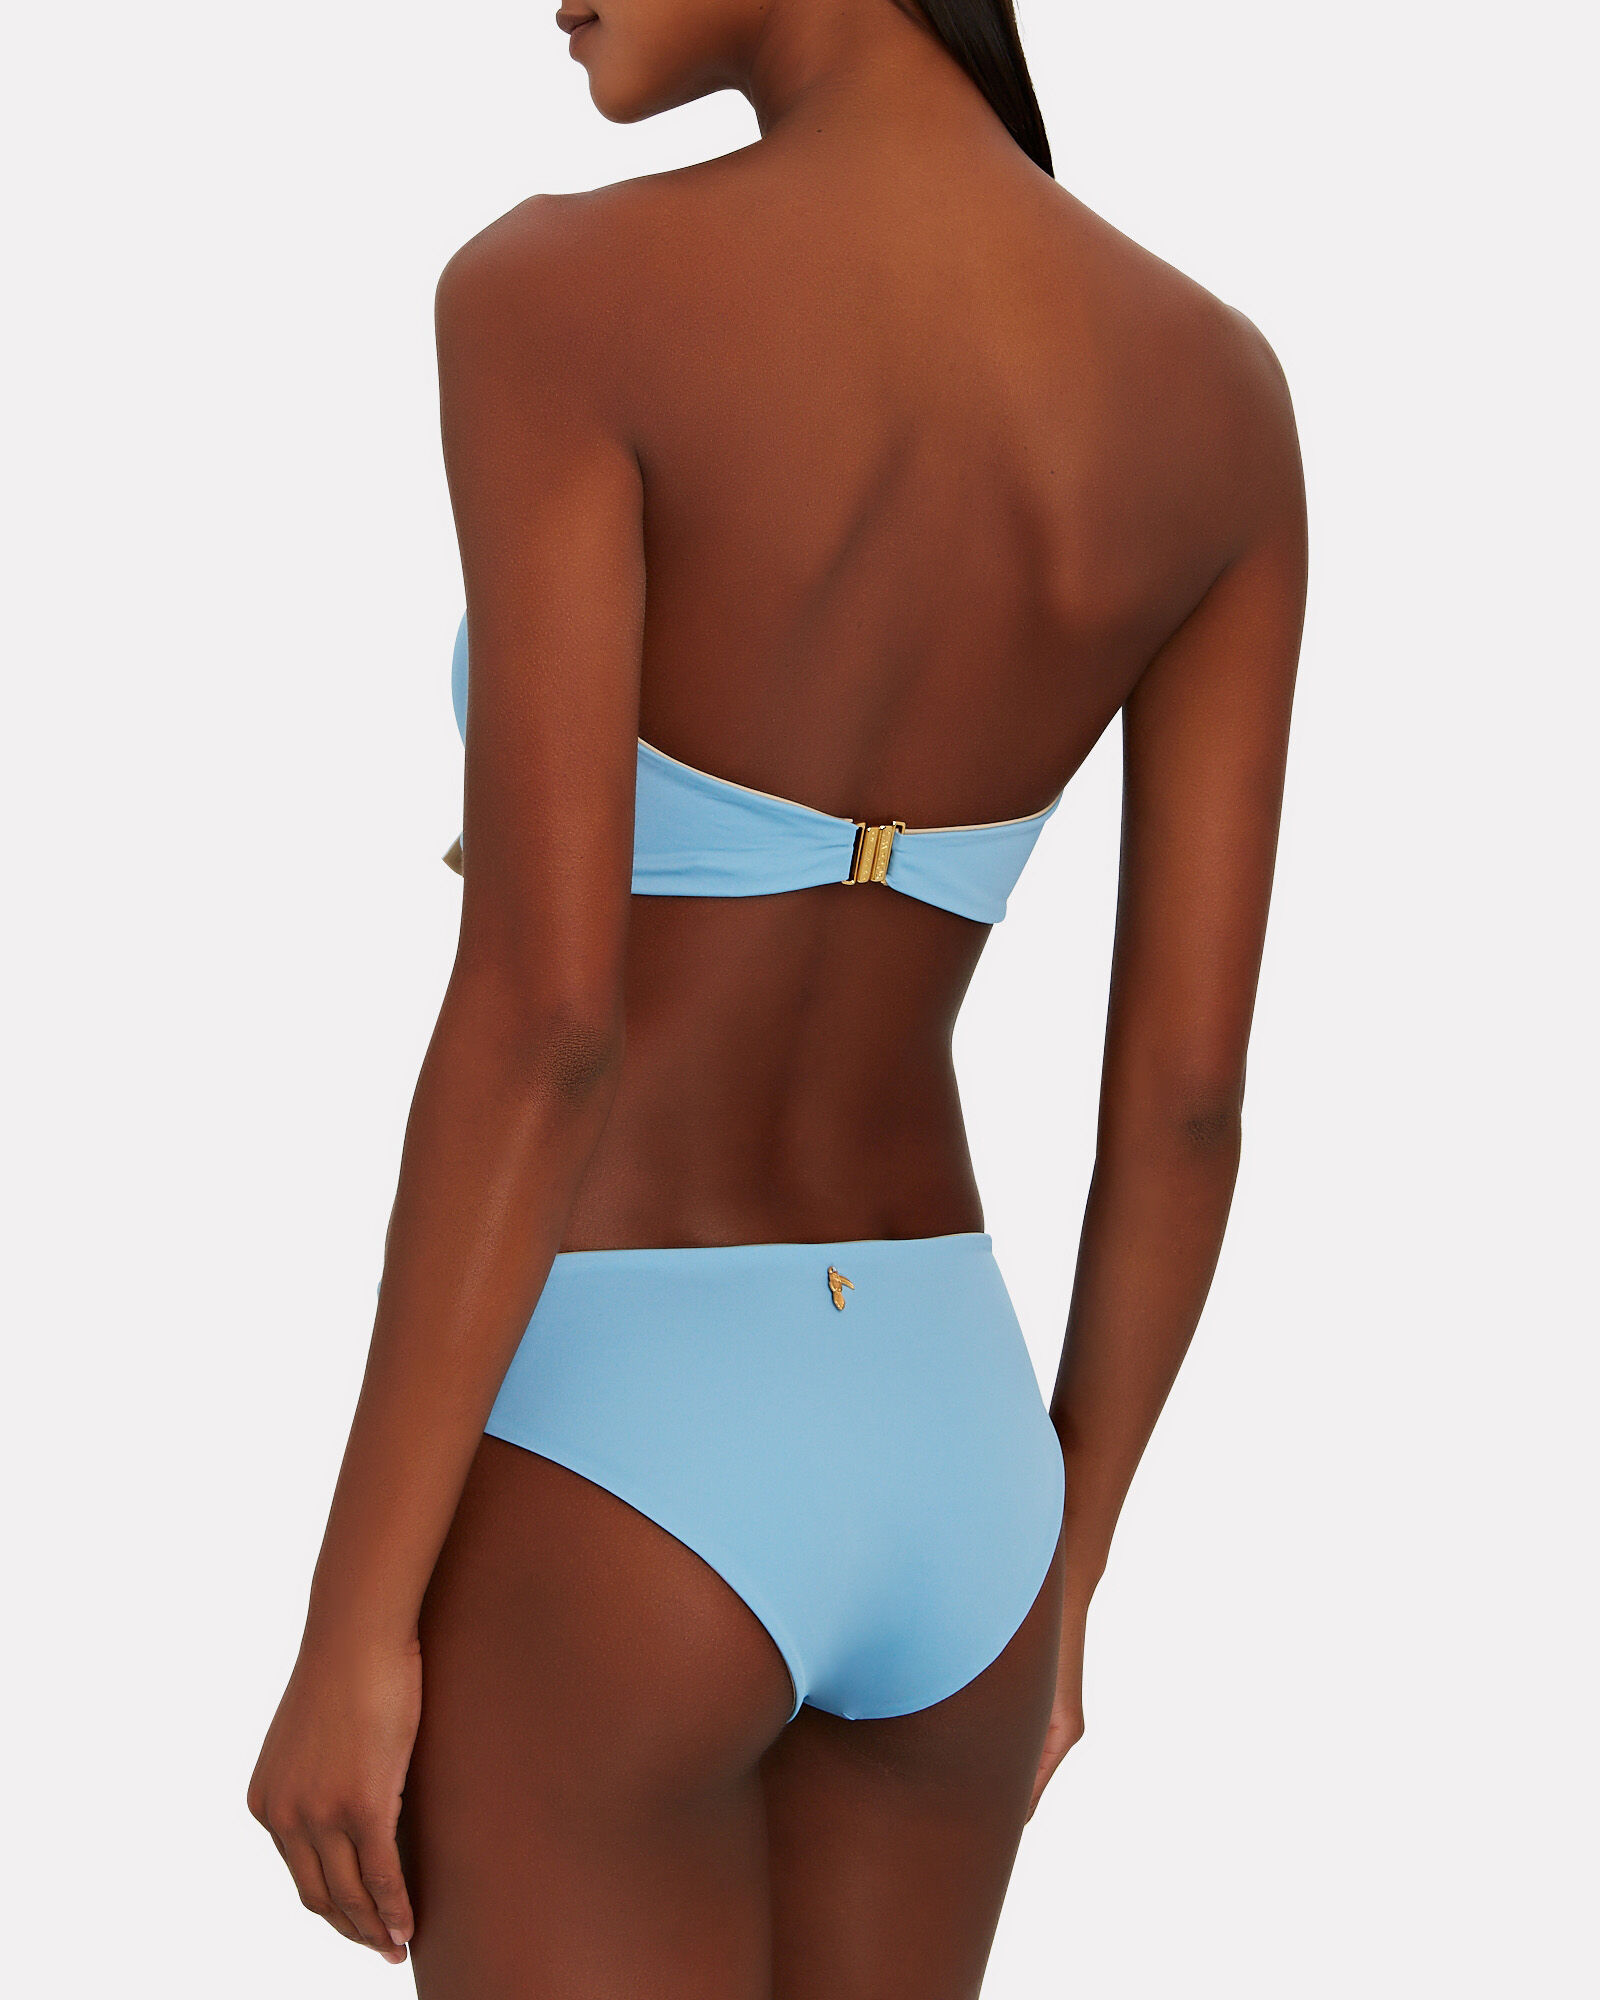 Sunset Waves Reversible Bikini Bottom, BLUE/BEIGE, hi-res